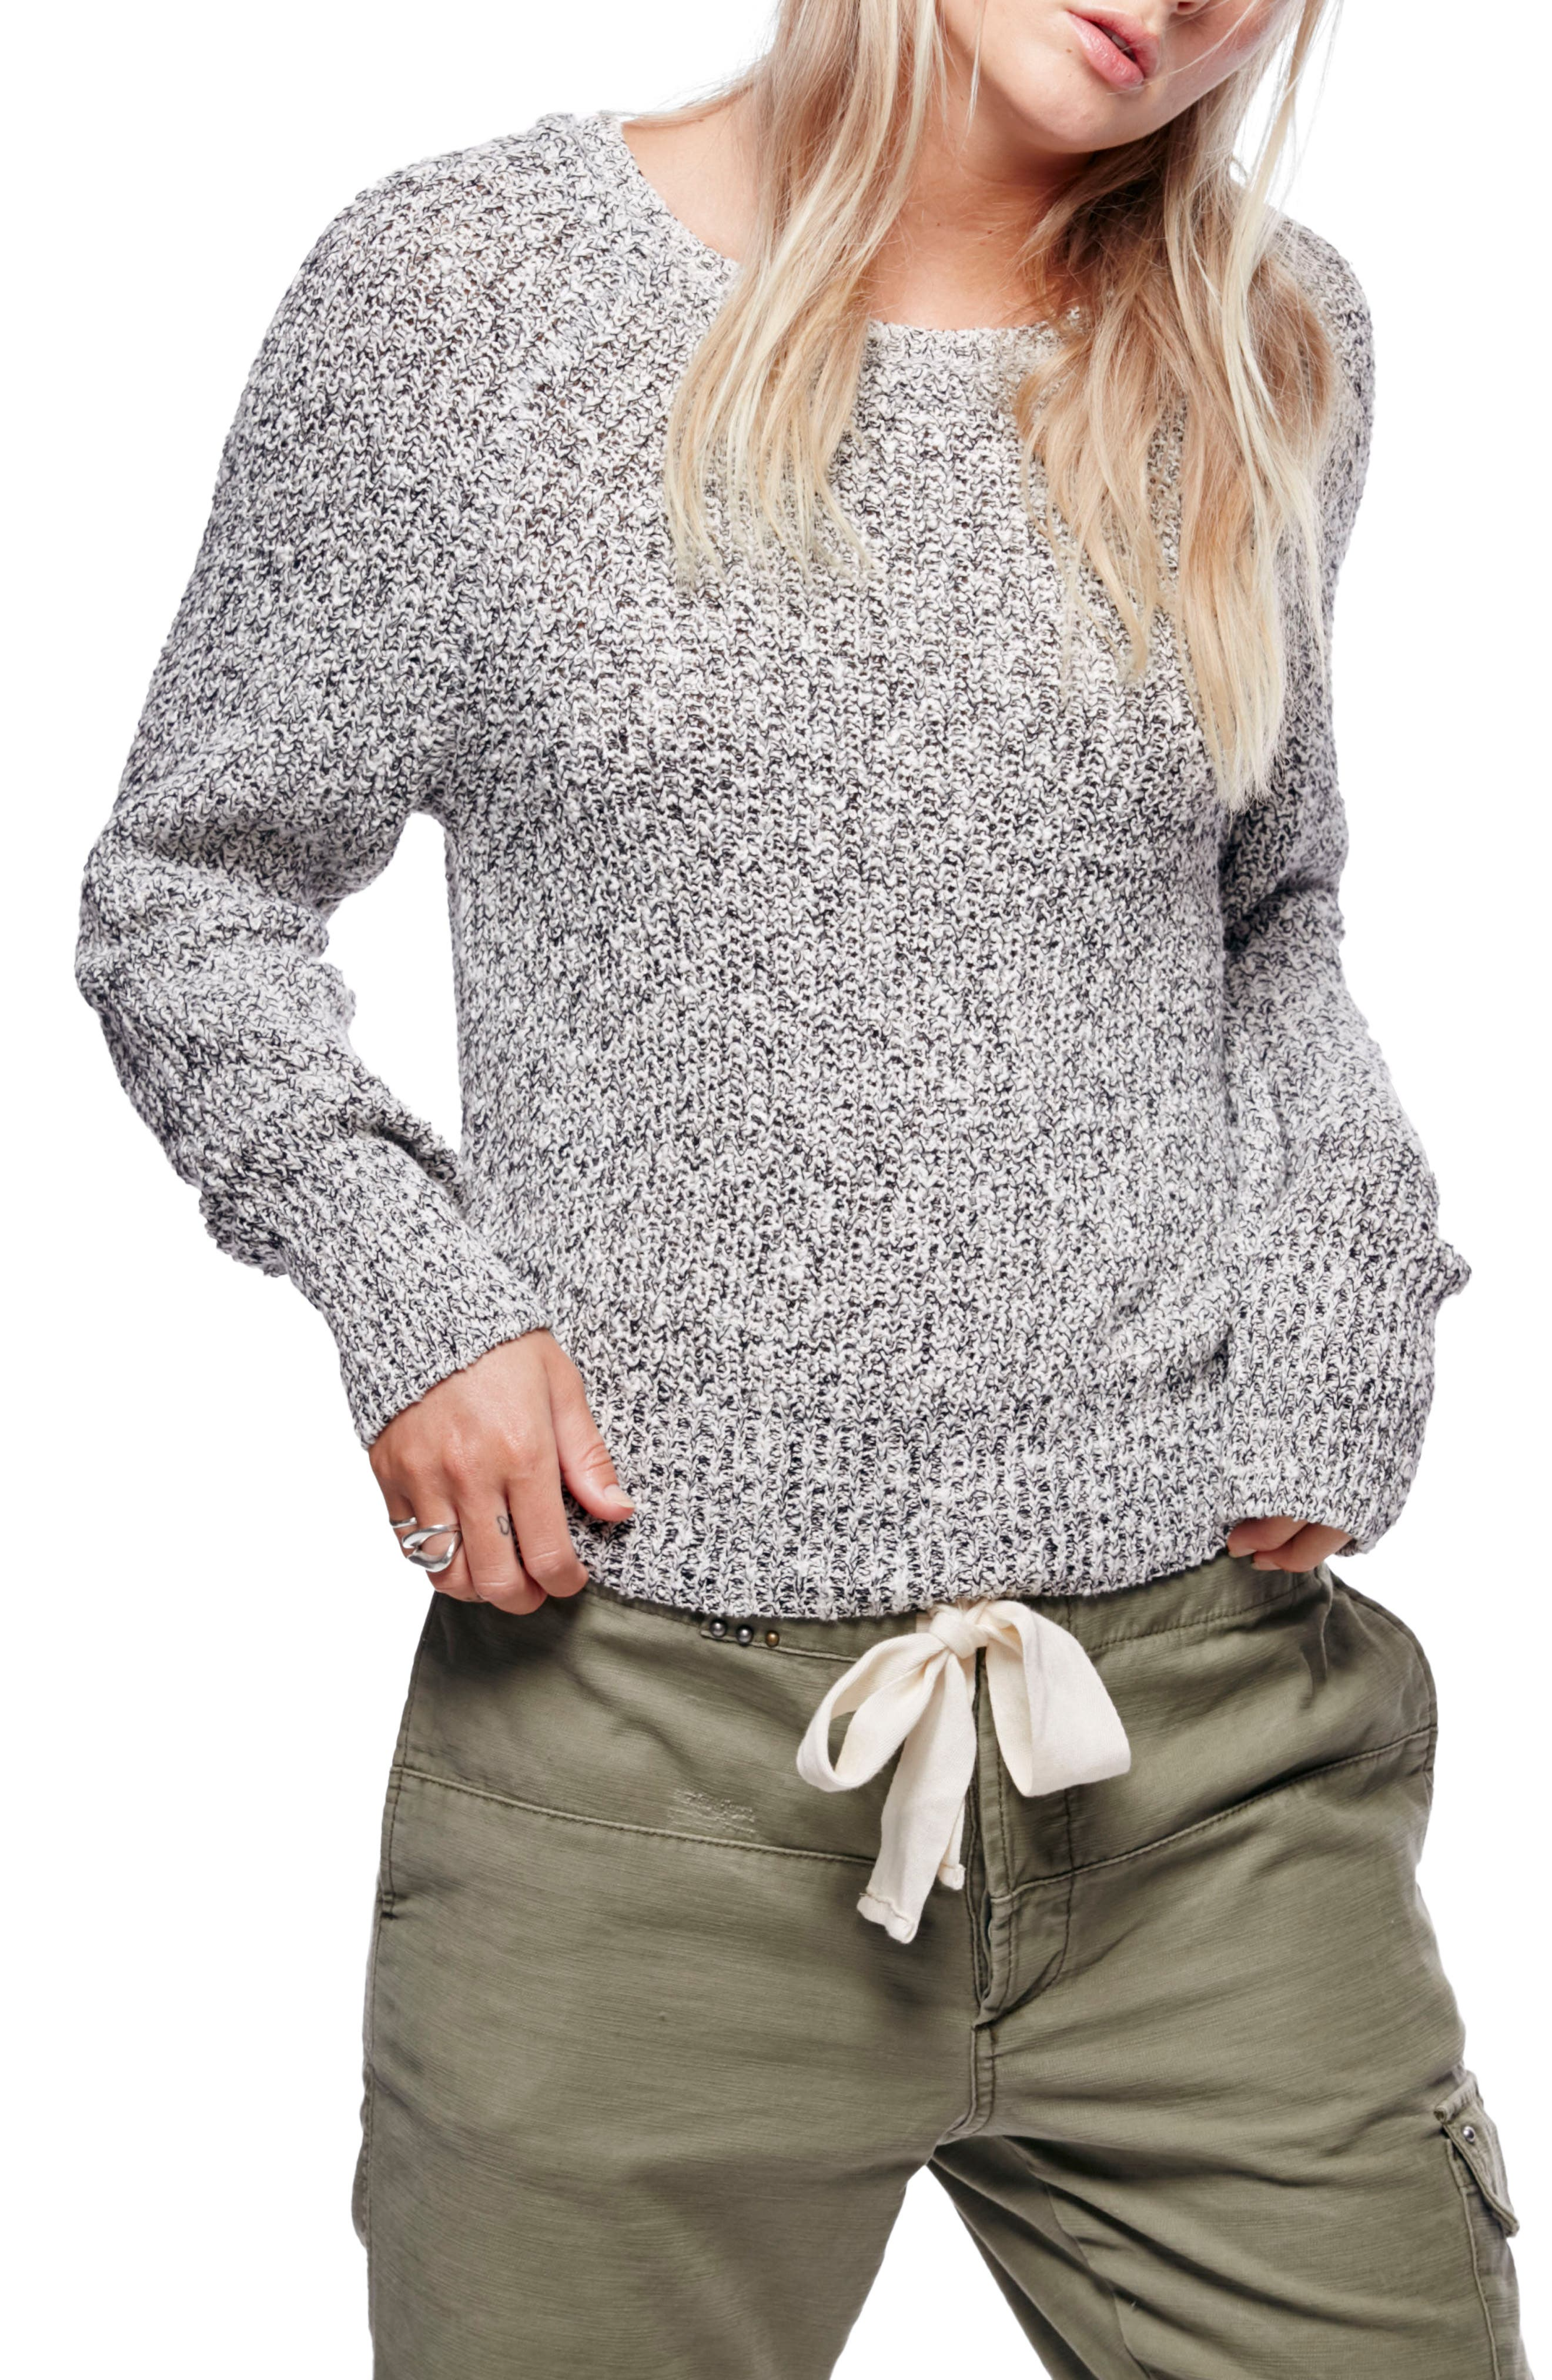 Electric City Pullover Sweater,                             Main thumbnail 1, color,                             001